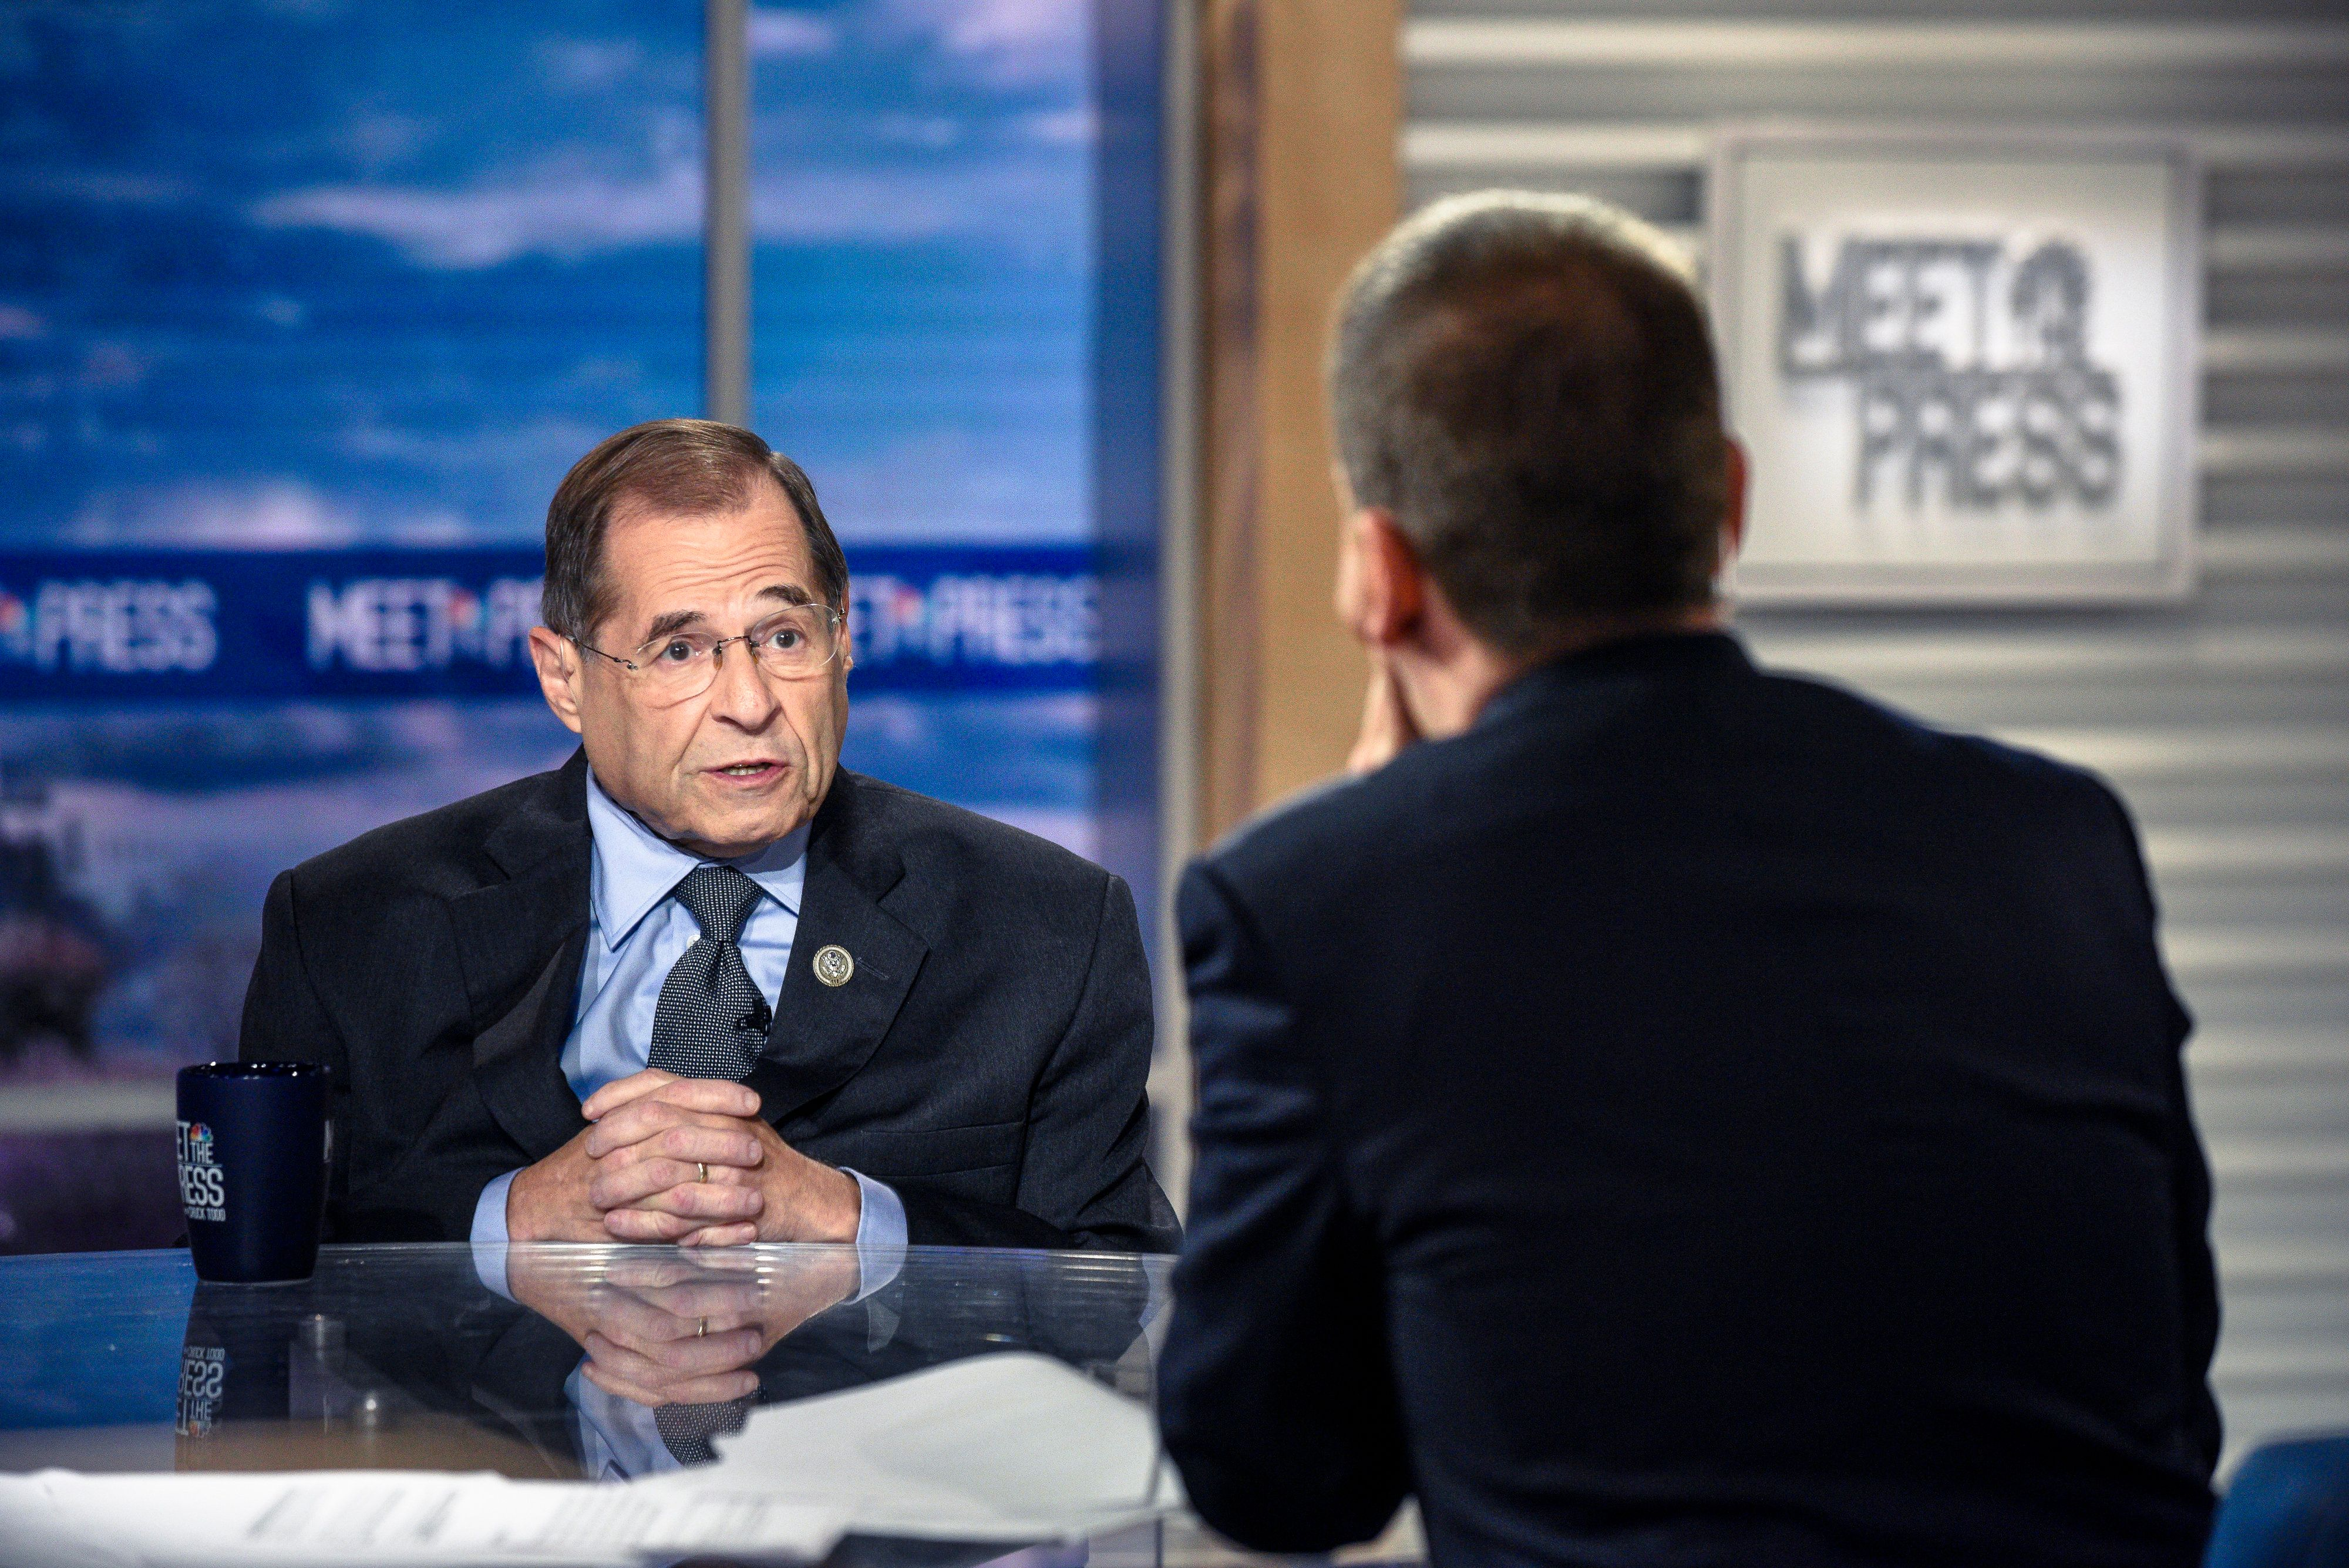 MEET THE PRESS -- Pictured: (l-r)  Rep. Jerrold Nadler (D-NY) and moderator Chuck Todd appear on 'Meet the Press' in Washington, D.C., Sunday, August 26, 2018.  (Photo by: William B. Plowman/NBC/NBC NewsWire via Getty Images)